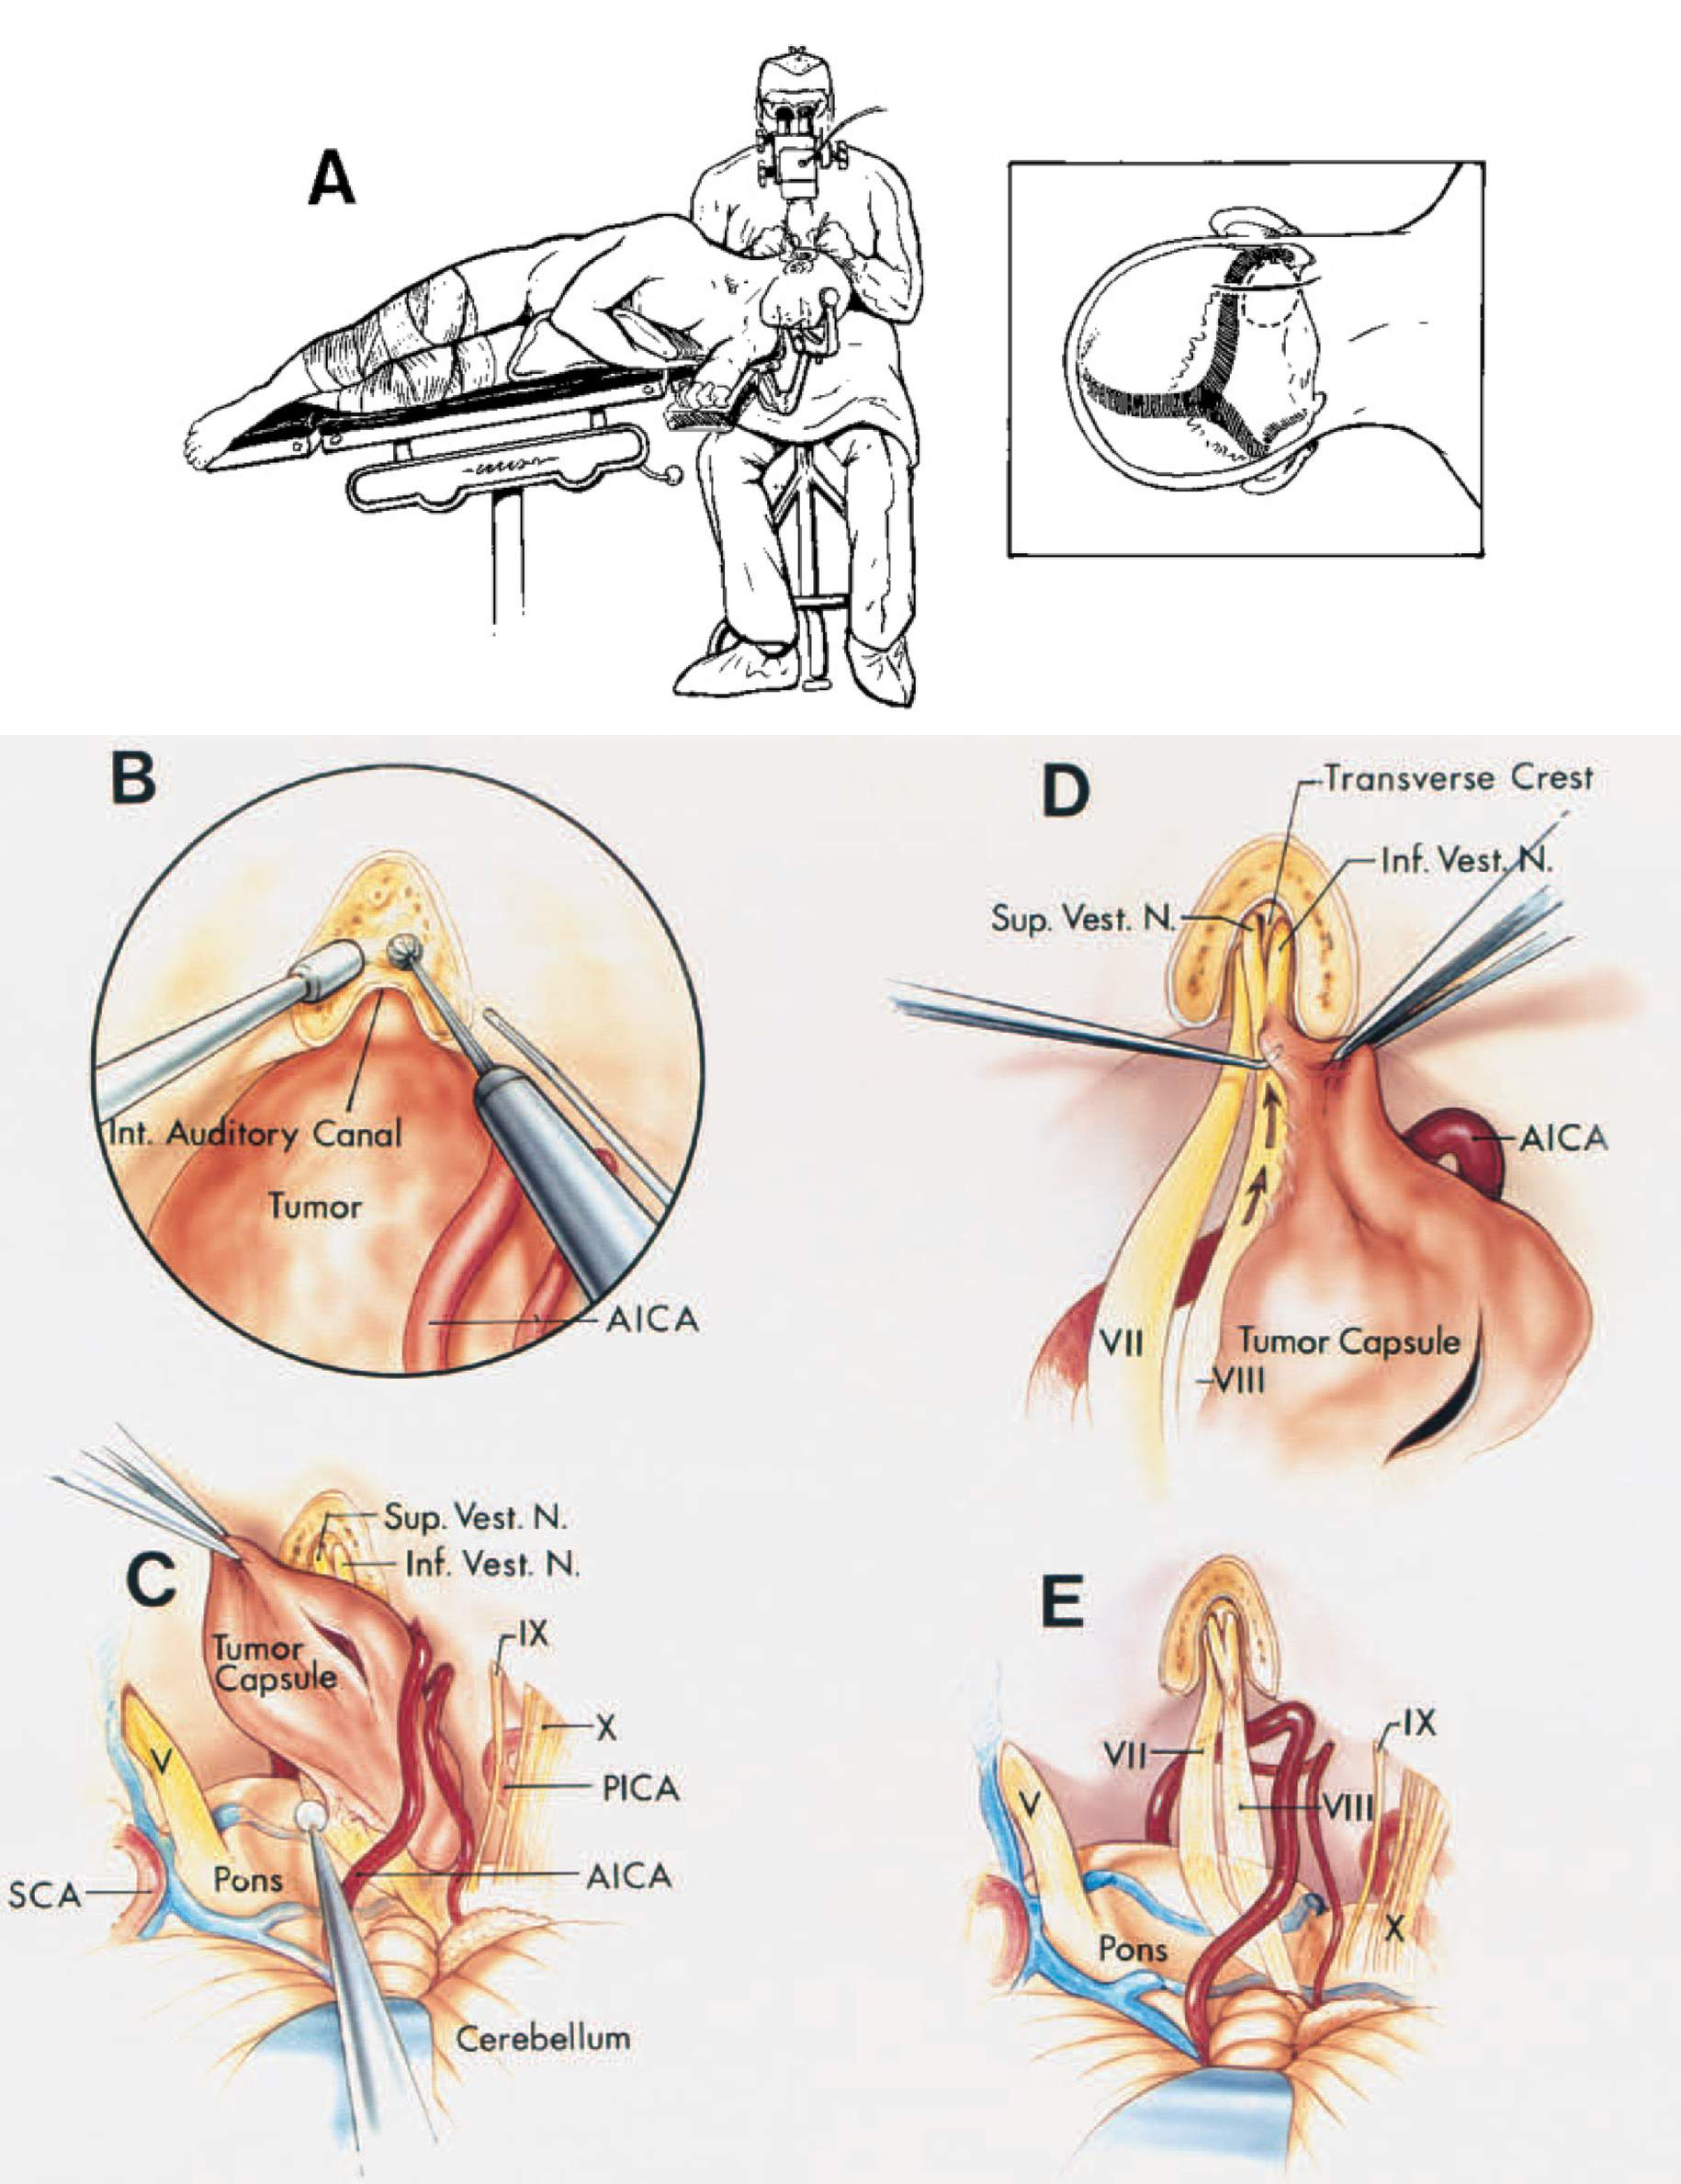 FIGURE 4.25. A. Retrosigmoid approach for removal of small or medium-size acoustic neuromas. A, the patient is positioned in the three-quarter prone position with the surgeon behind the head. The insert (right) shows the site of the scalp incision (continuous line) and the bony opening (interrupted line).B–E. Retrosigmoid approach for the removal of small or medium-size acoustic neuromas. B, the posterior wall of the internal auditory canal is removed using an irrigating drill. The AICA courses around the lower margin of the tumor. C, the intracapsular contents of the tumor have been removed. The capsule of the tumor is being separated from the pons and the posterior surface of the part of thefacial and vestibulocochlear nerves adjacent to the brainstem. The superior and inferior vestibular nerves are seen at the lateral end of the internal auditory canal. The trigeminal nerve and SCA are above the tumor and the glossopharyngeal and vagus nerves and the PICA are below the tumor. D, the dissection along the eighth nerve is done in a medial to lateral direction (arrows) to avoid tearing the tiny filaments of the cochlear nerve in the lateral end of the canal where they pass through the lamina cribrosa. The transverse crest separates the superior and inferior vestibular nerves in the lateral end of the canal. E, cerebellopontine angle and internal auditory canal after tumor removal. The facial and vestibulocochlear nerves have been preserved. A.I.C.A., anteroinferior cerebellar artery; Inf., inferior; Int., internal; N., nerve; P.I.C.A., posteroinferior cerebellar artery; S.C.A., superior cerebellar artery; Sup., superior; Vest., vestibular. (From, Rhoton AL Jr: Microsurgical anatomy of acoustic neuromas, in Sekhar LN, Janecka IP (eds): Surgery of Cranial Base Tumors. New York, Raven Press, 1993, pp 687–713 [37].)